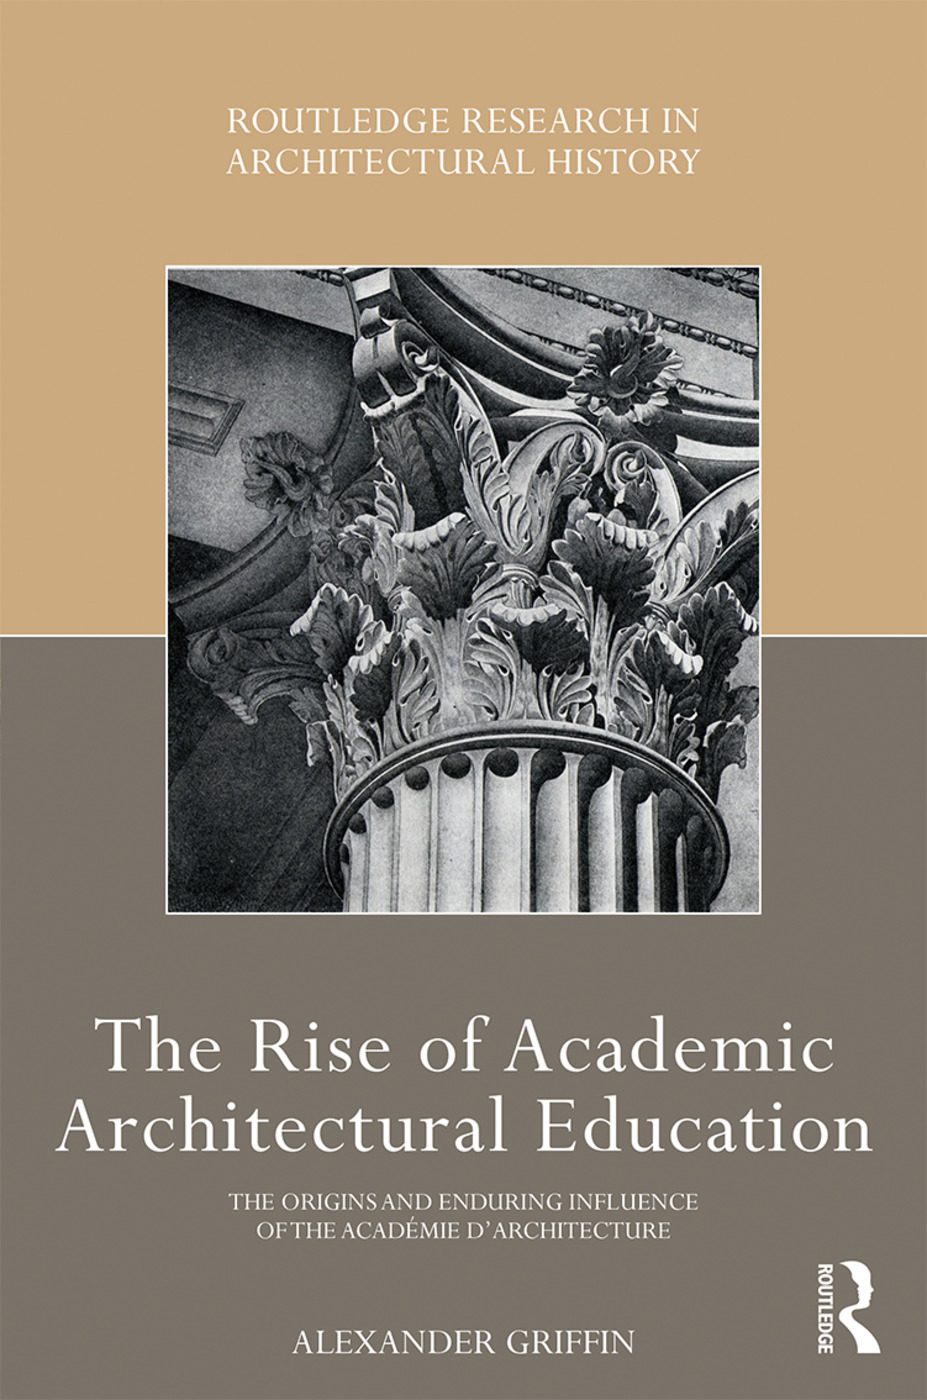 The Rise of Academic Architectural Education: The origins and enduring influence of the Académie d'Architecture book cover